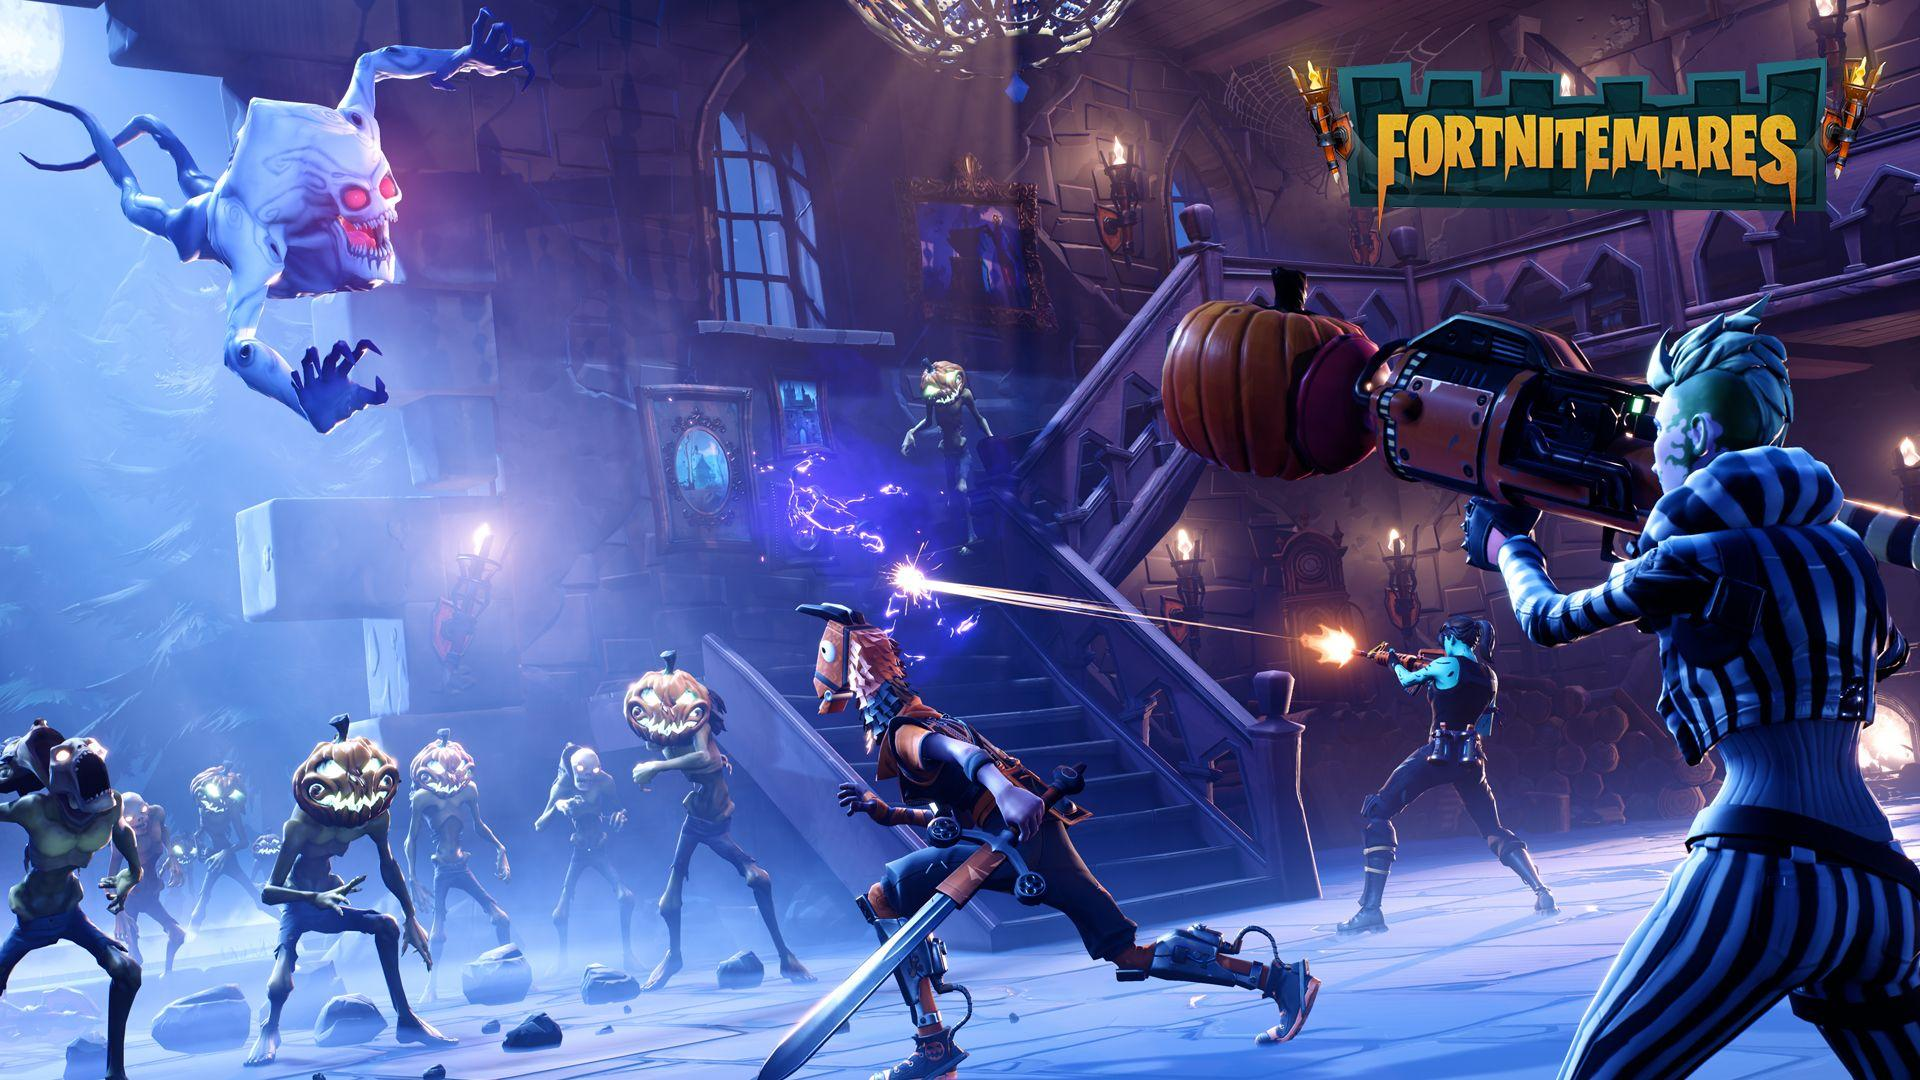 Fortnite season 3 wallpapers wallpaper cave for Fond ecran fortnite